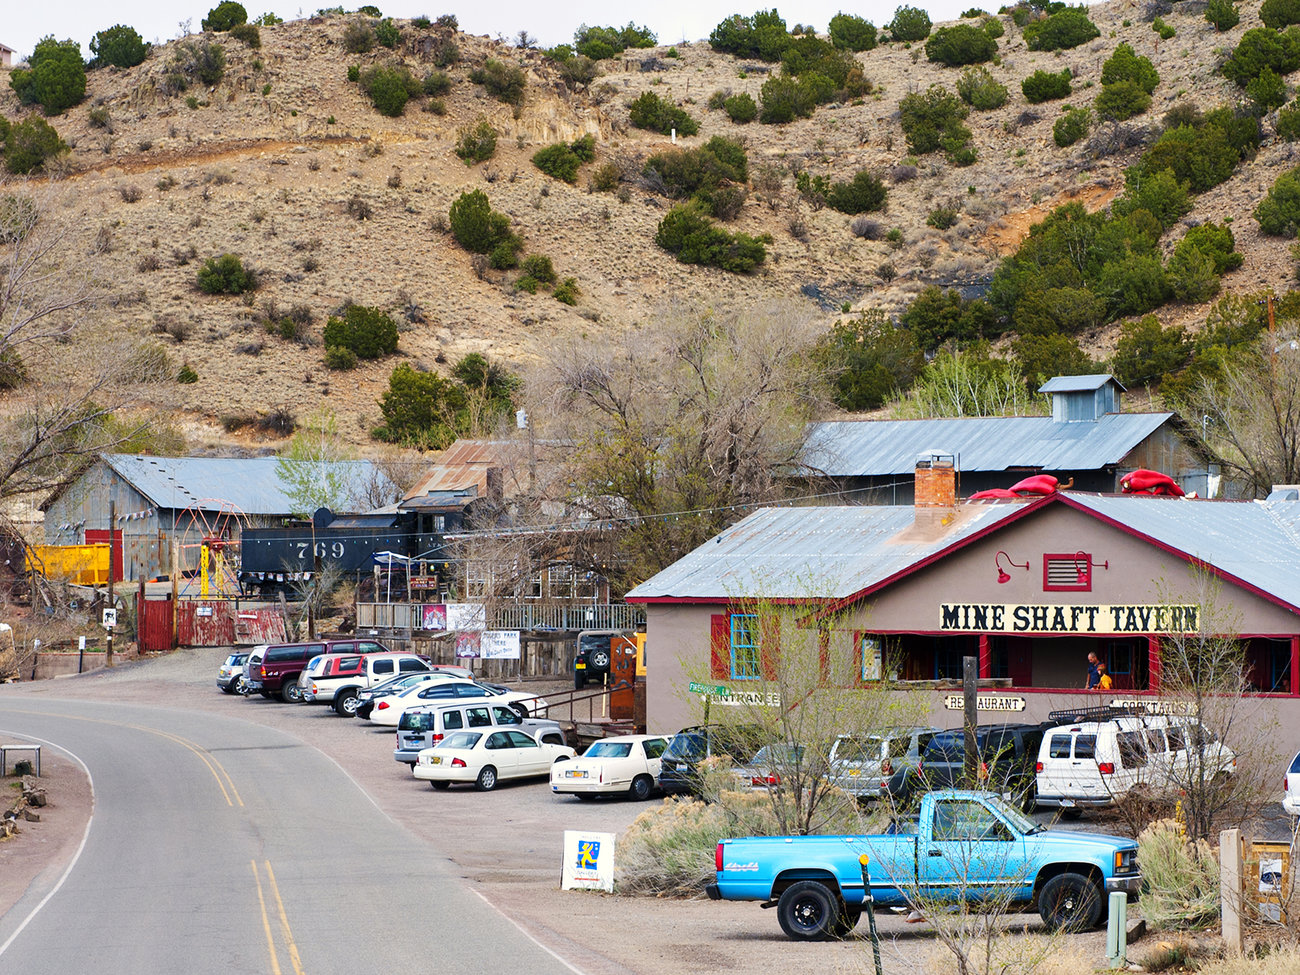 Madrid Town near Santa Fe New Mexico